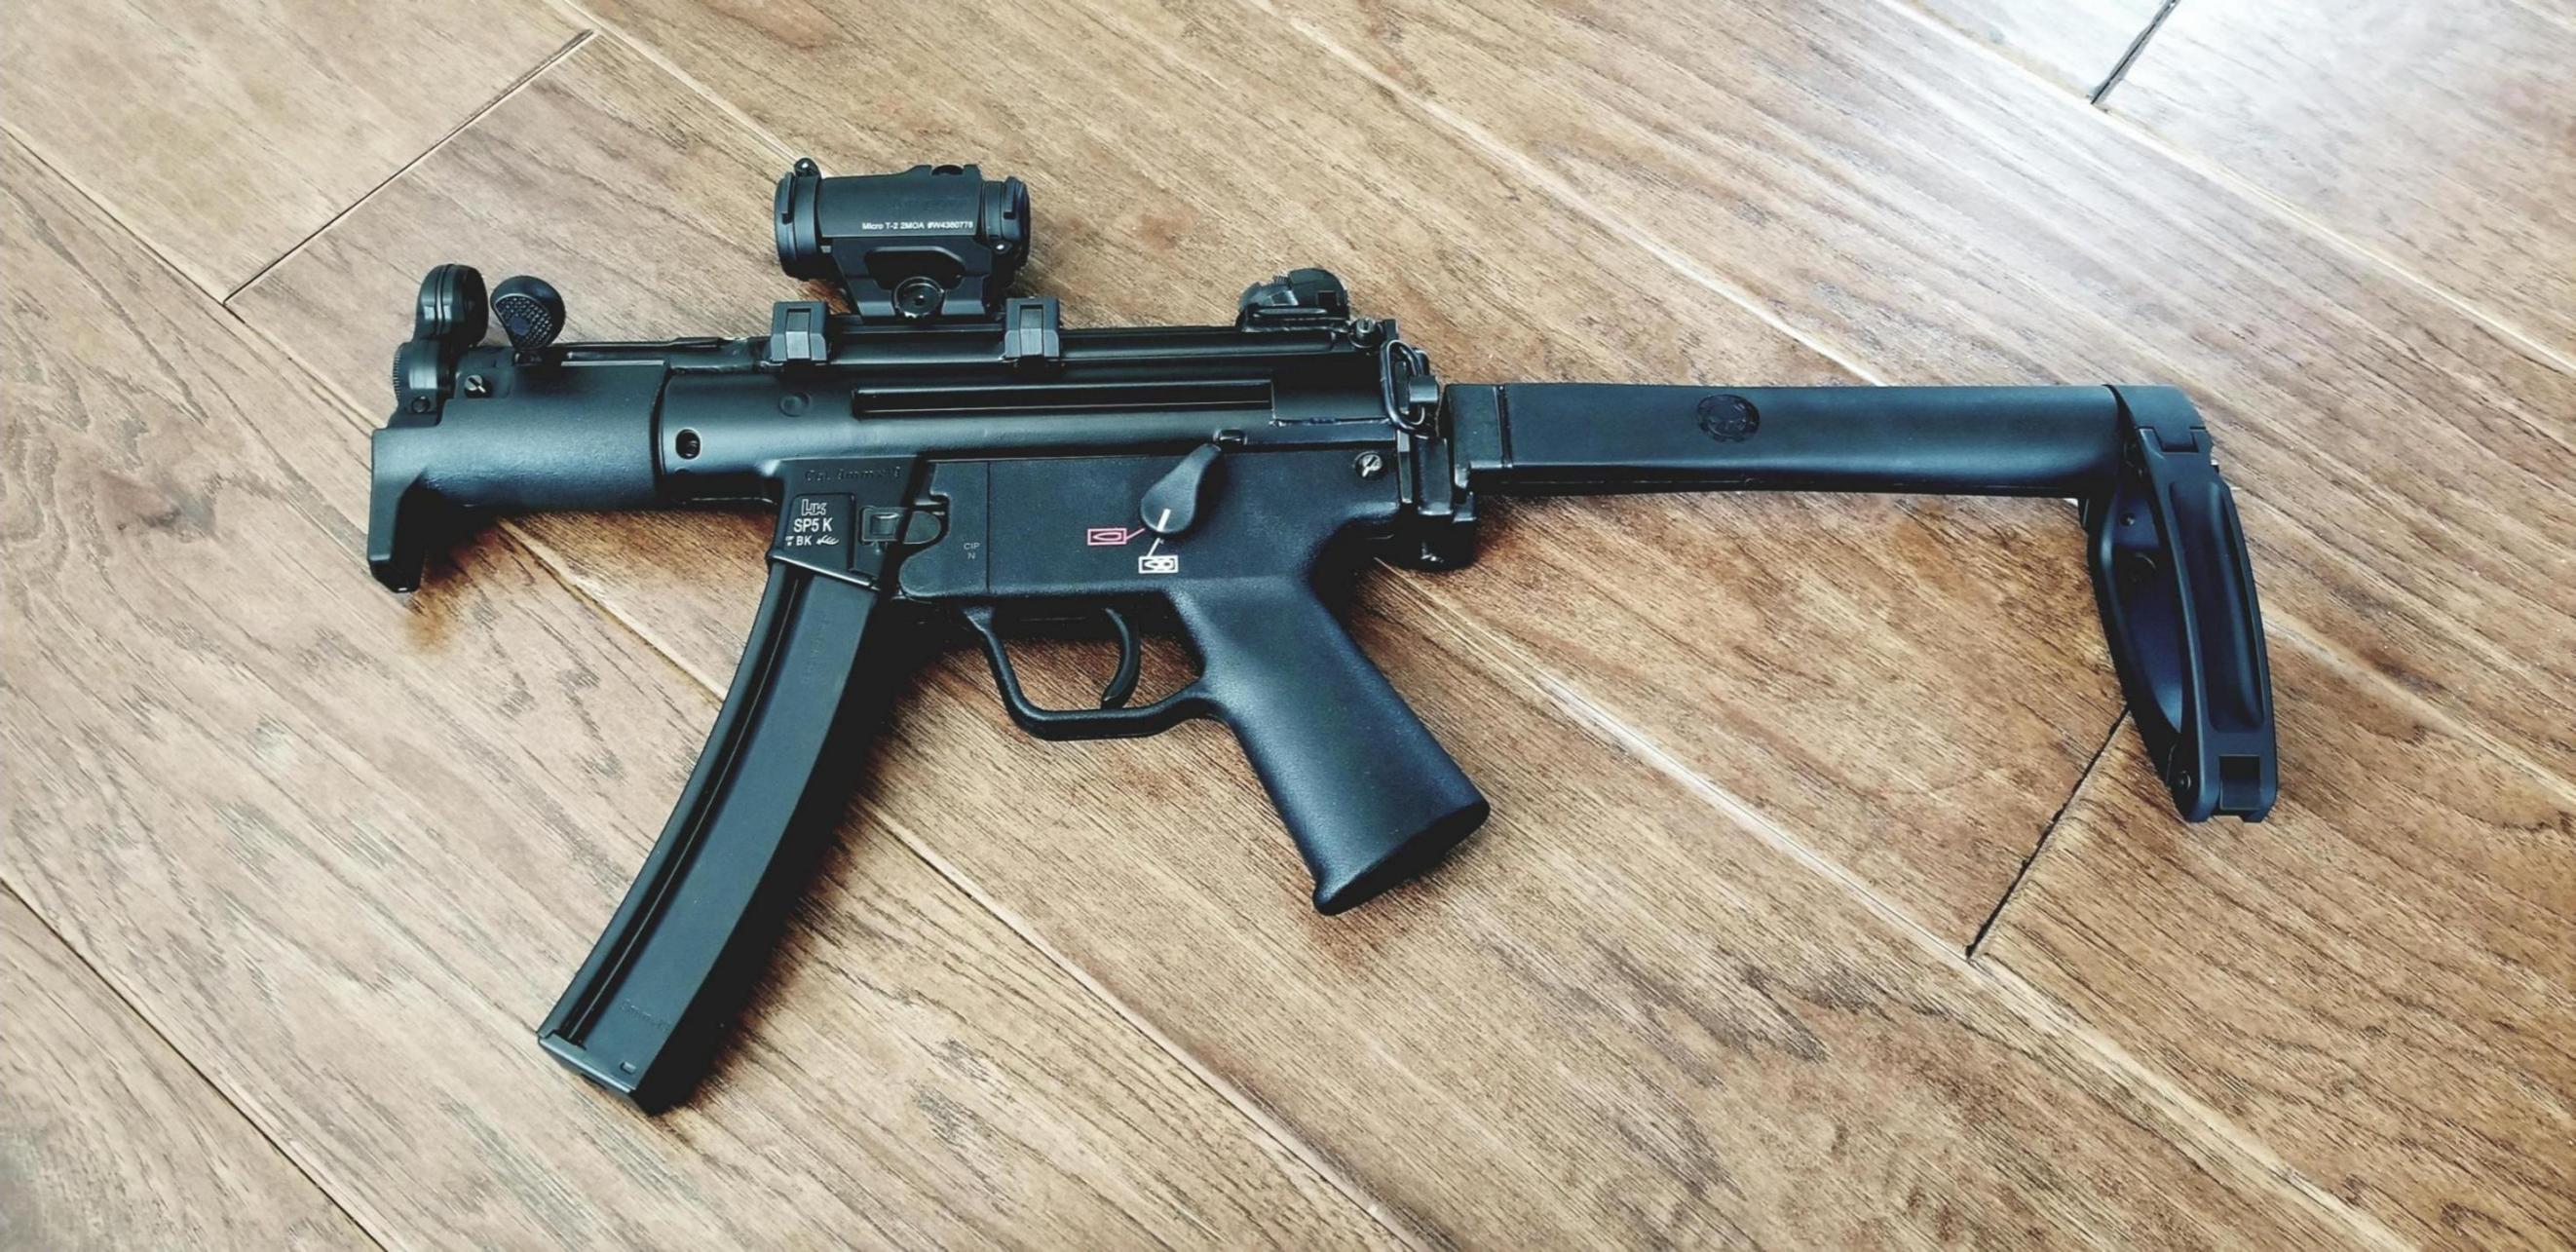 Let's See Your MP5's!-20190408_183849_1554766467190.jpg